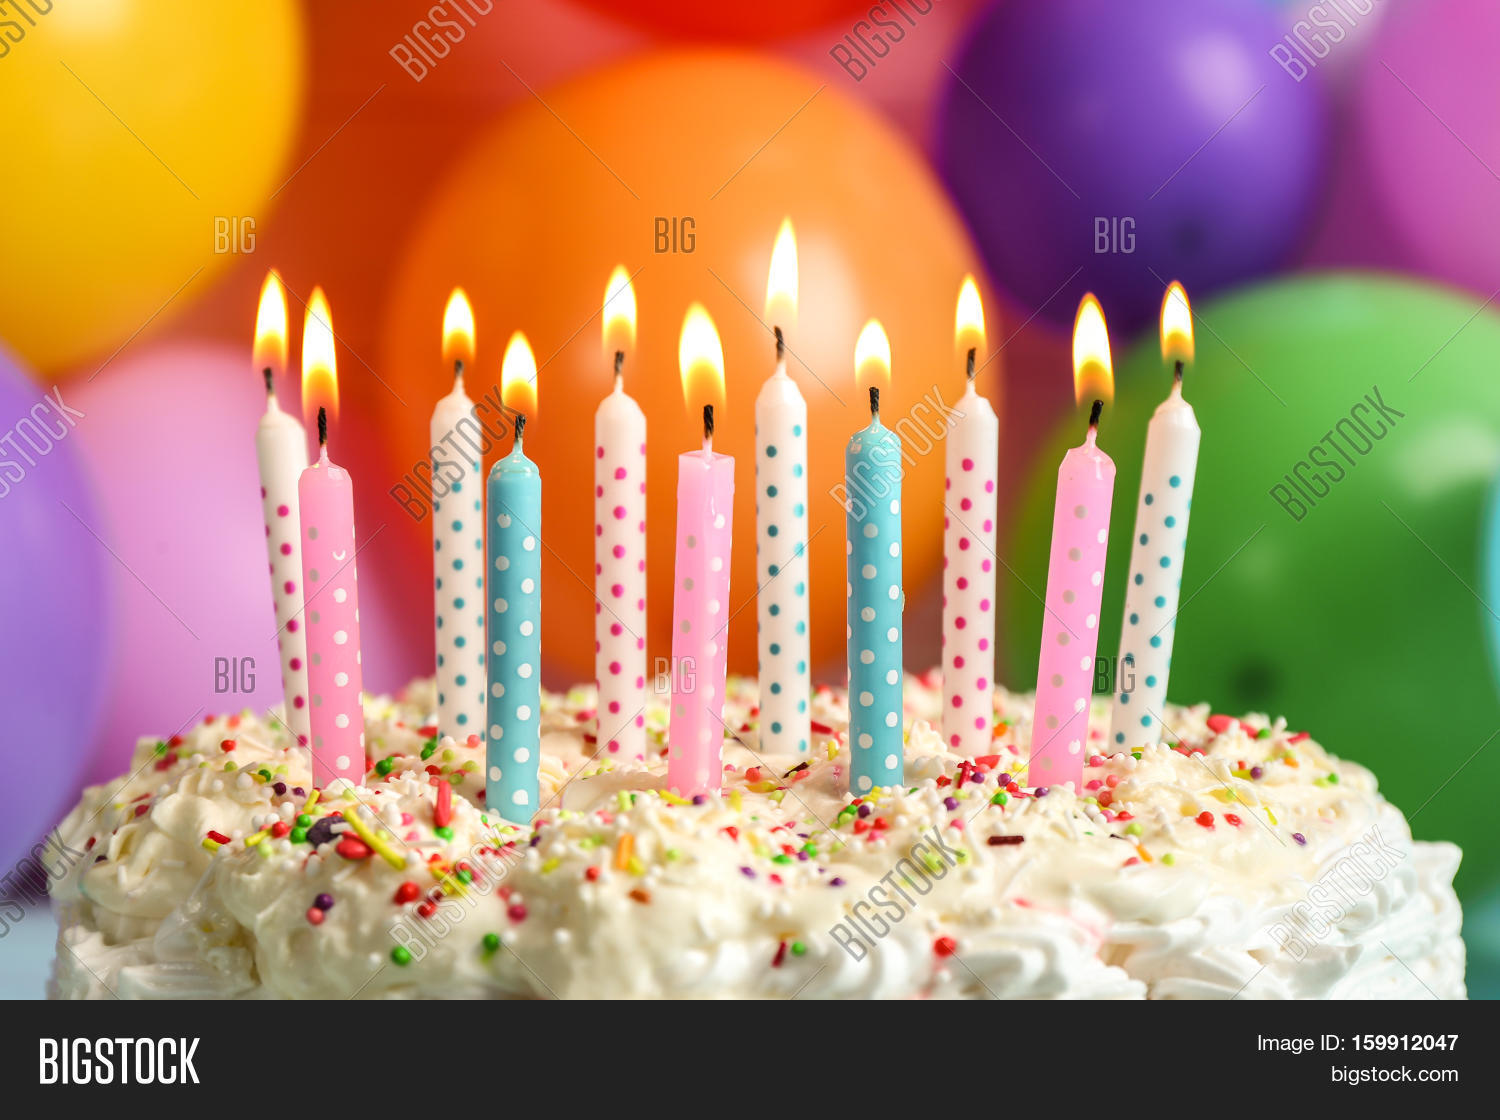 Marvelous Birthday Cake Candles Image Photo Free Trial Bigstock Birthday Cards Printable Trancafe Filternl